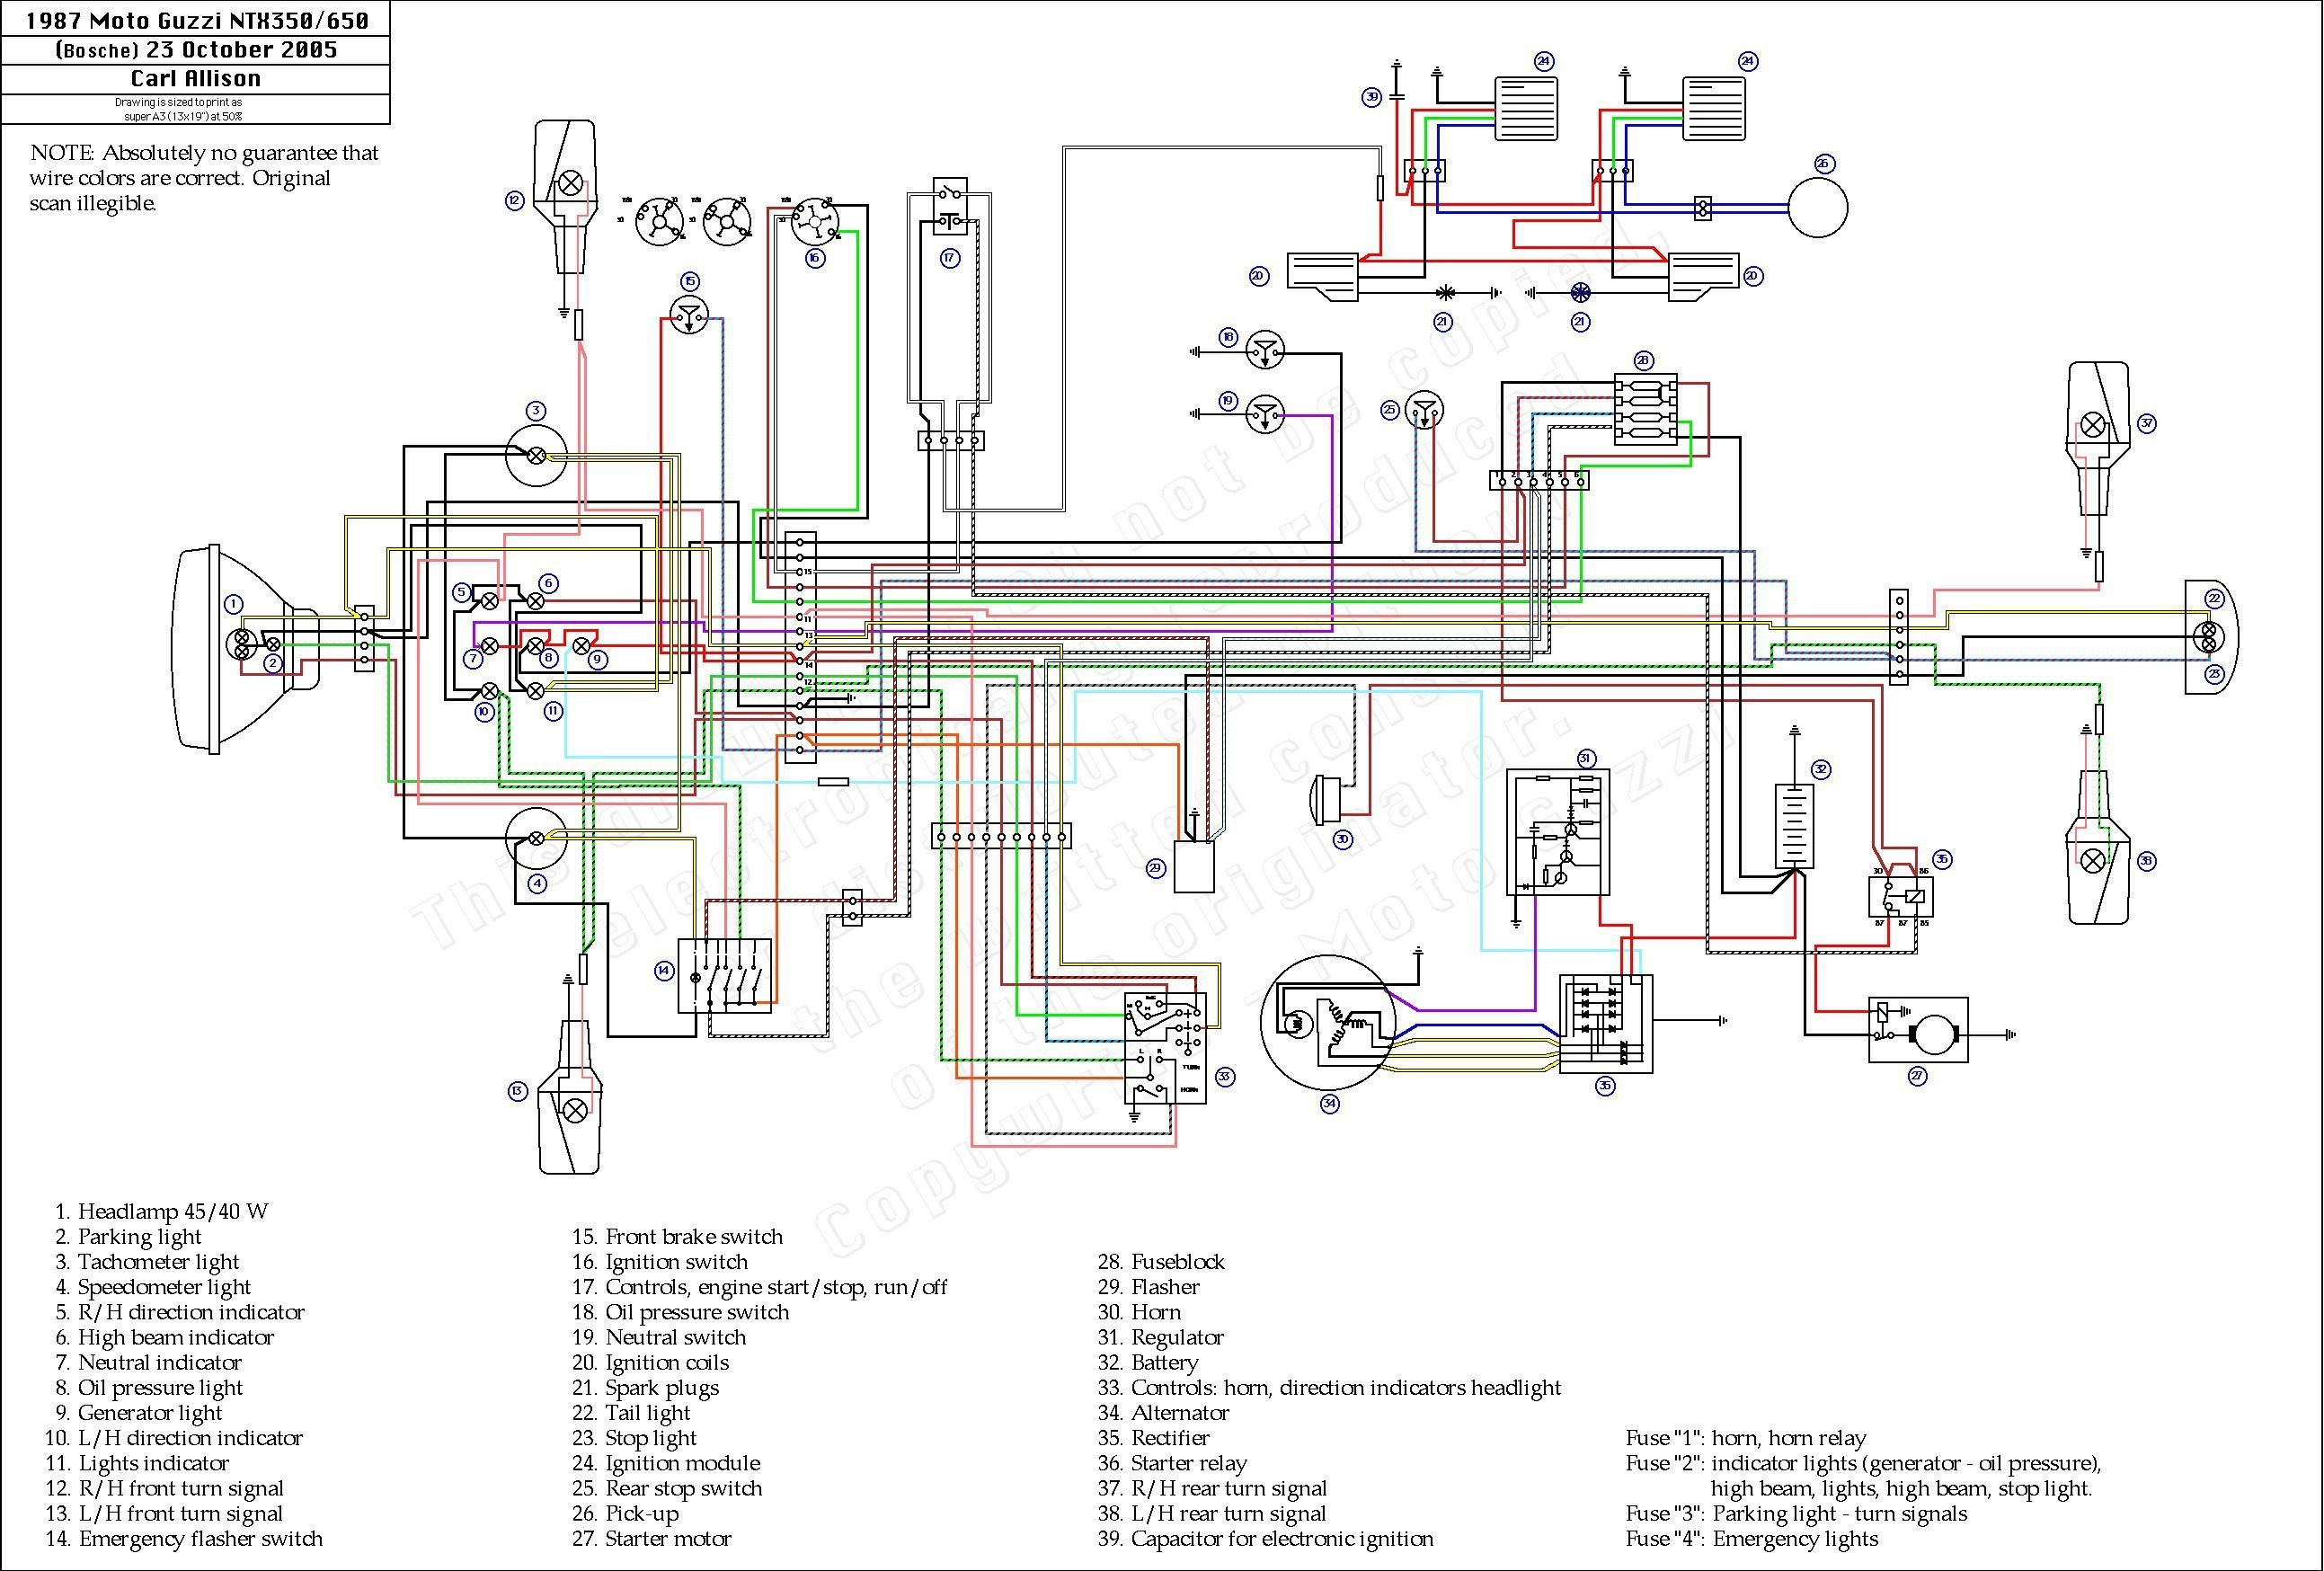 Husqvarna 250 Wiring Diagram - Wiring Diagram Data on circuit breaker schematic, light bulb schematic, camera schematic, light switch schematic, light pole schematic, pipe schematic, toilet schematic, light socket schematic, oven schematic, fluorescent light schematic, light electrical schematic, strobe light schematic, computer schematic, led lights schematic, electronics schematic, door schematic, dryer schematic, light ballast schematic, light box schematic, light shape schematic,